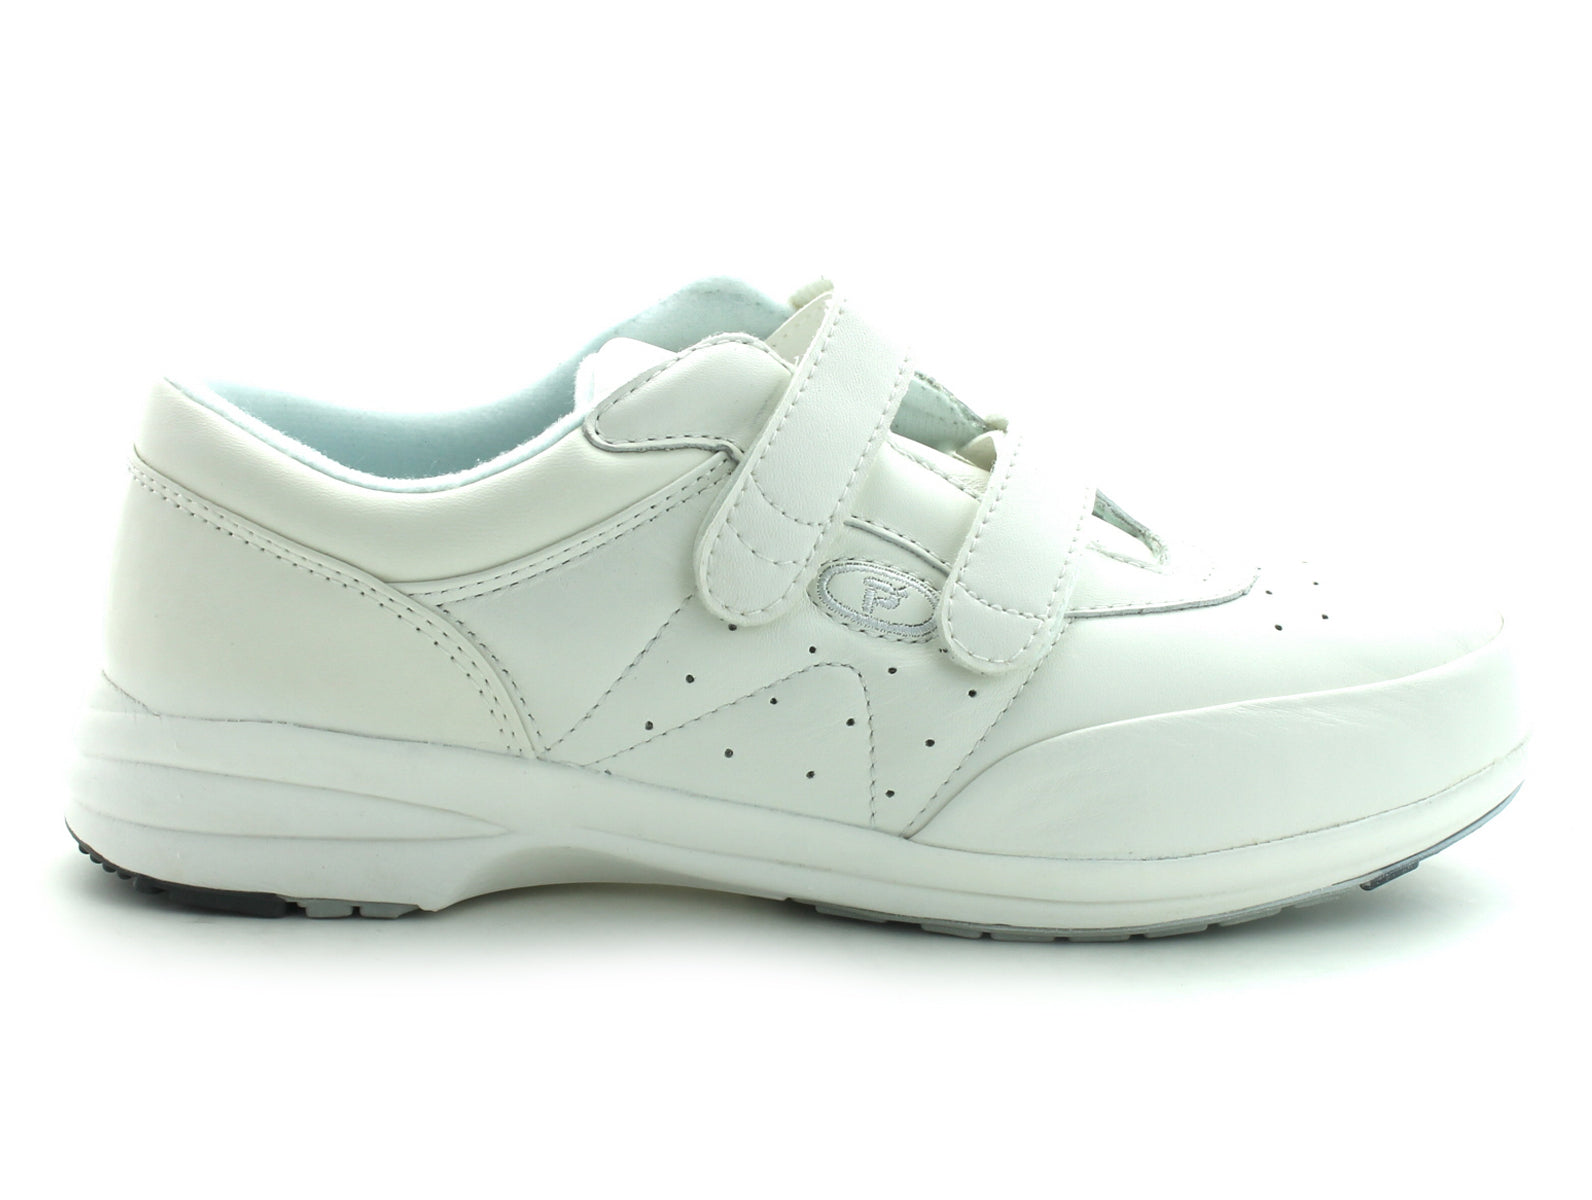 Propet 3845 in White Leather outer view